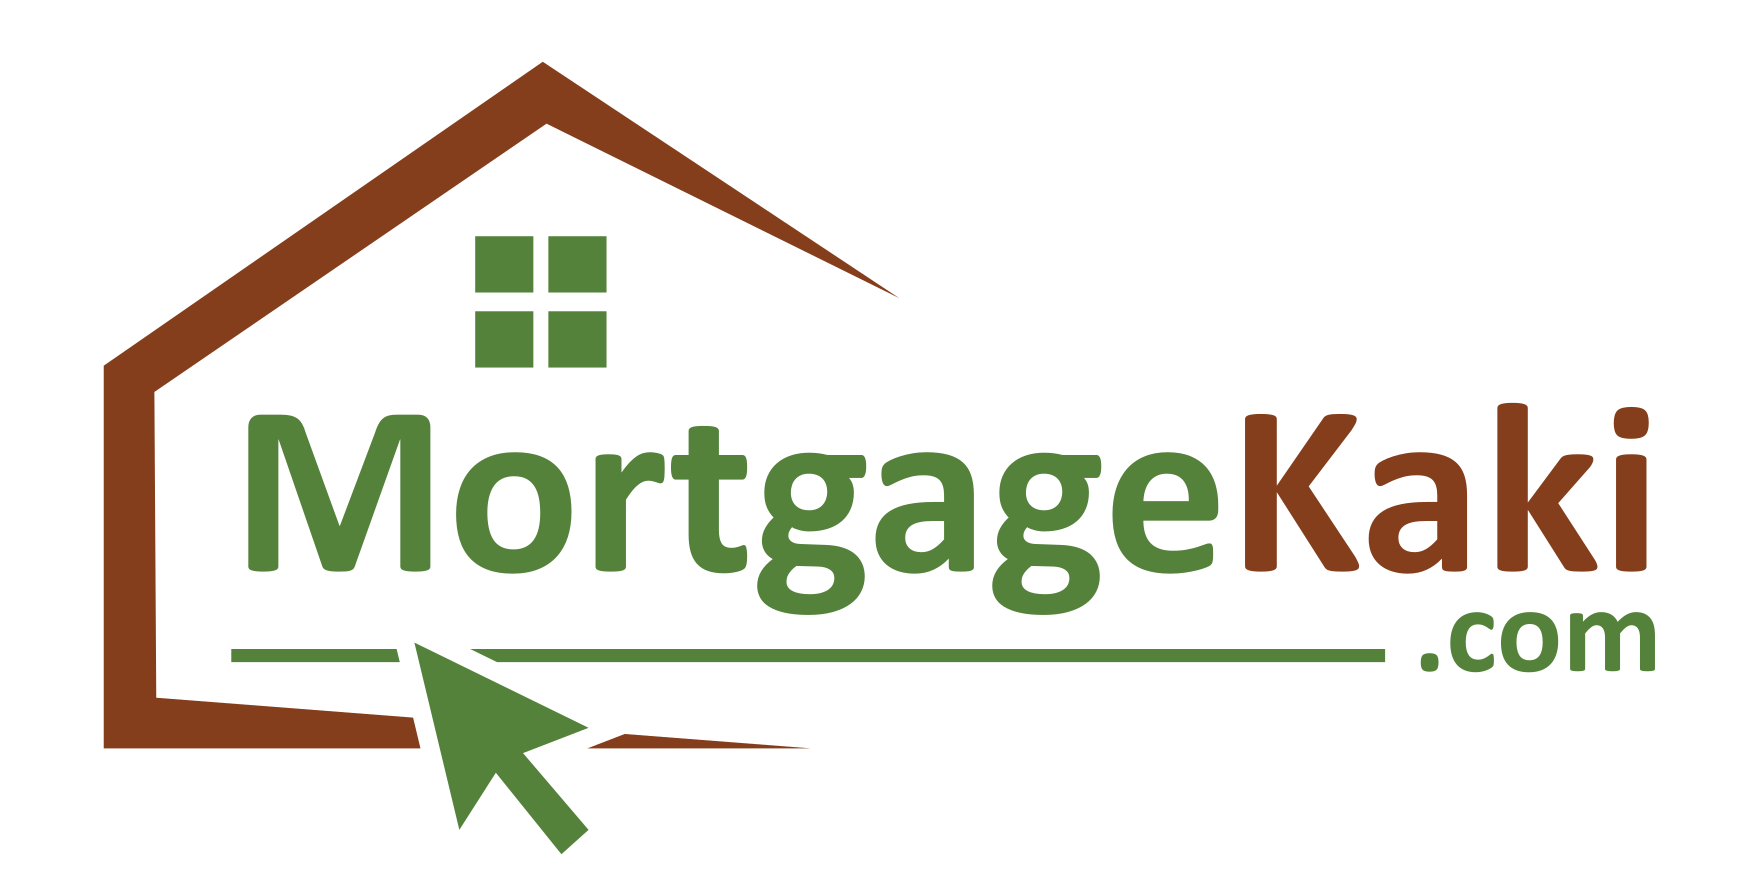 Mortgage Rates Apr 2020 - Try it for yourself to see the savings